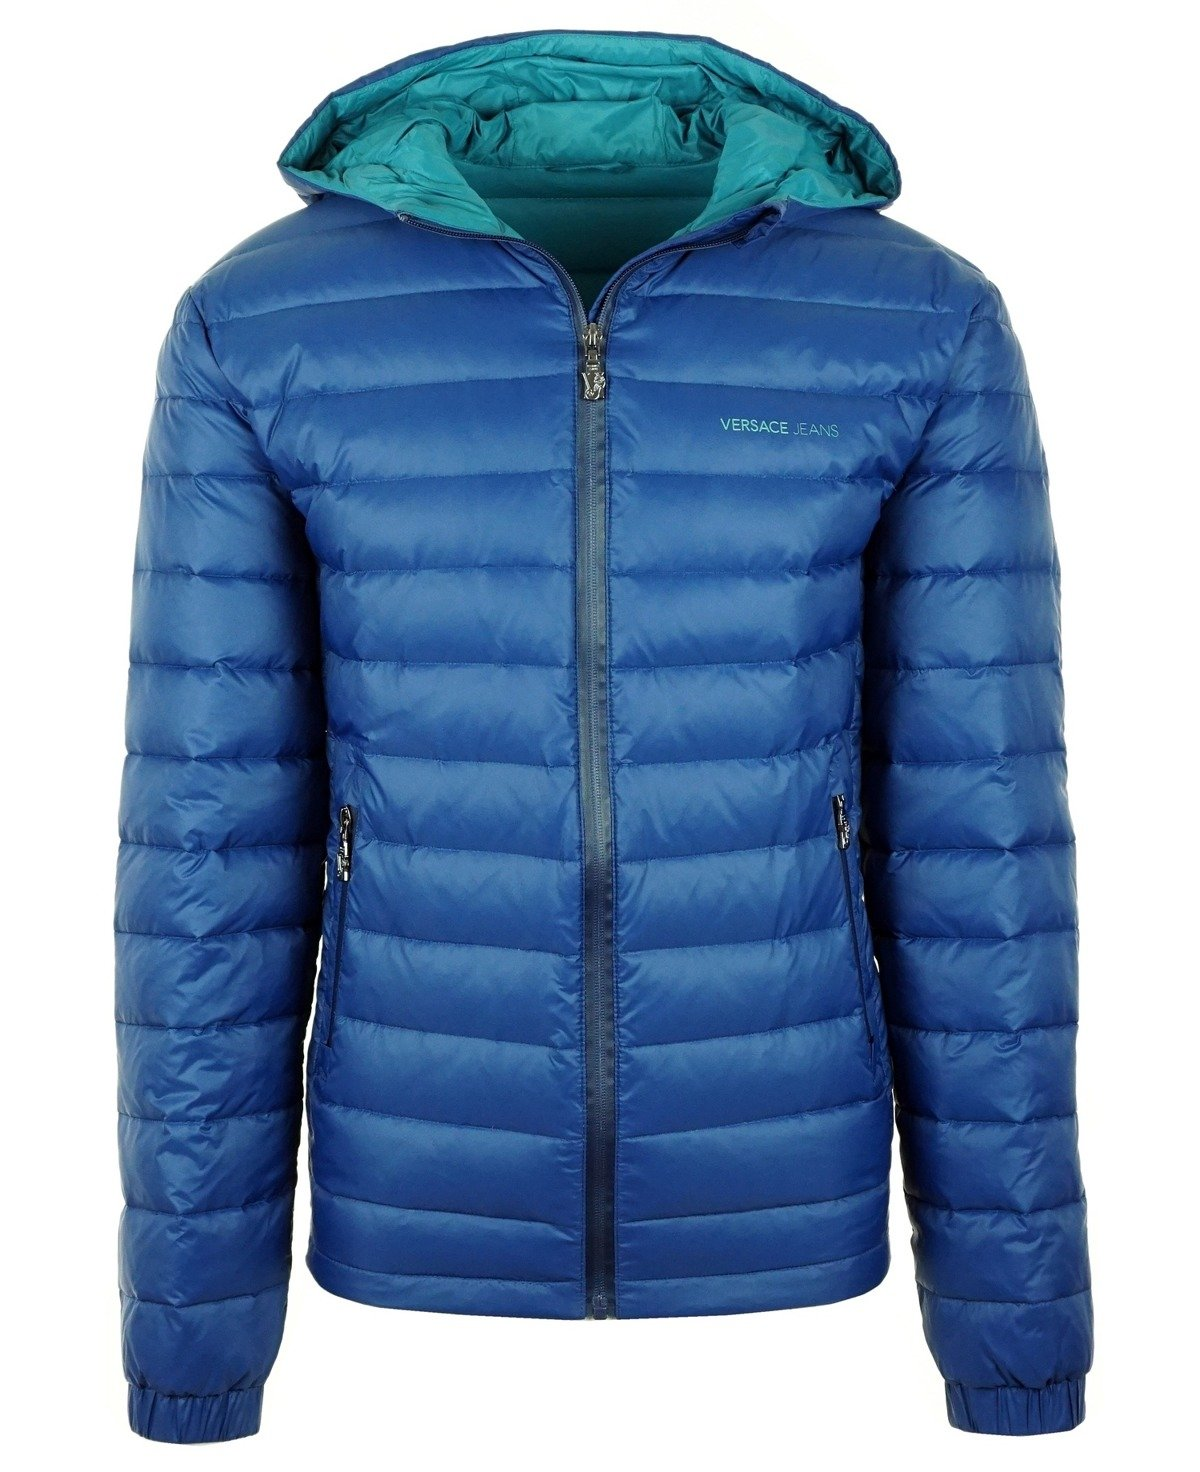 the latest 1135f f61a4 VERSACE JEANS E5GNA907 Herren Men Daunenjacke Down Jacket Blau Blue